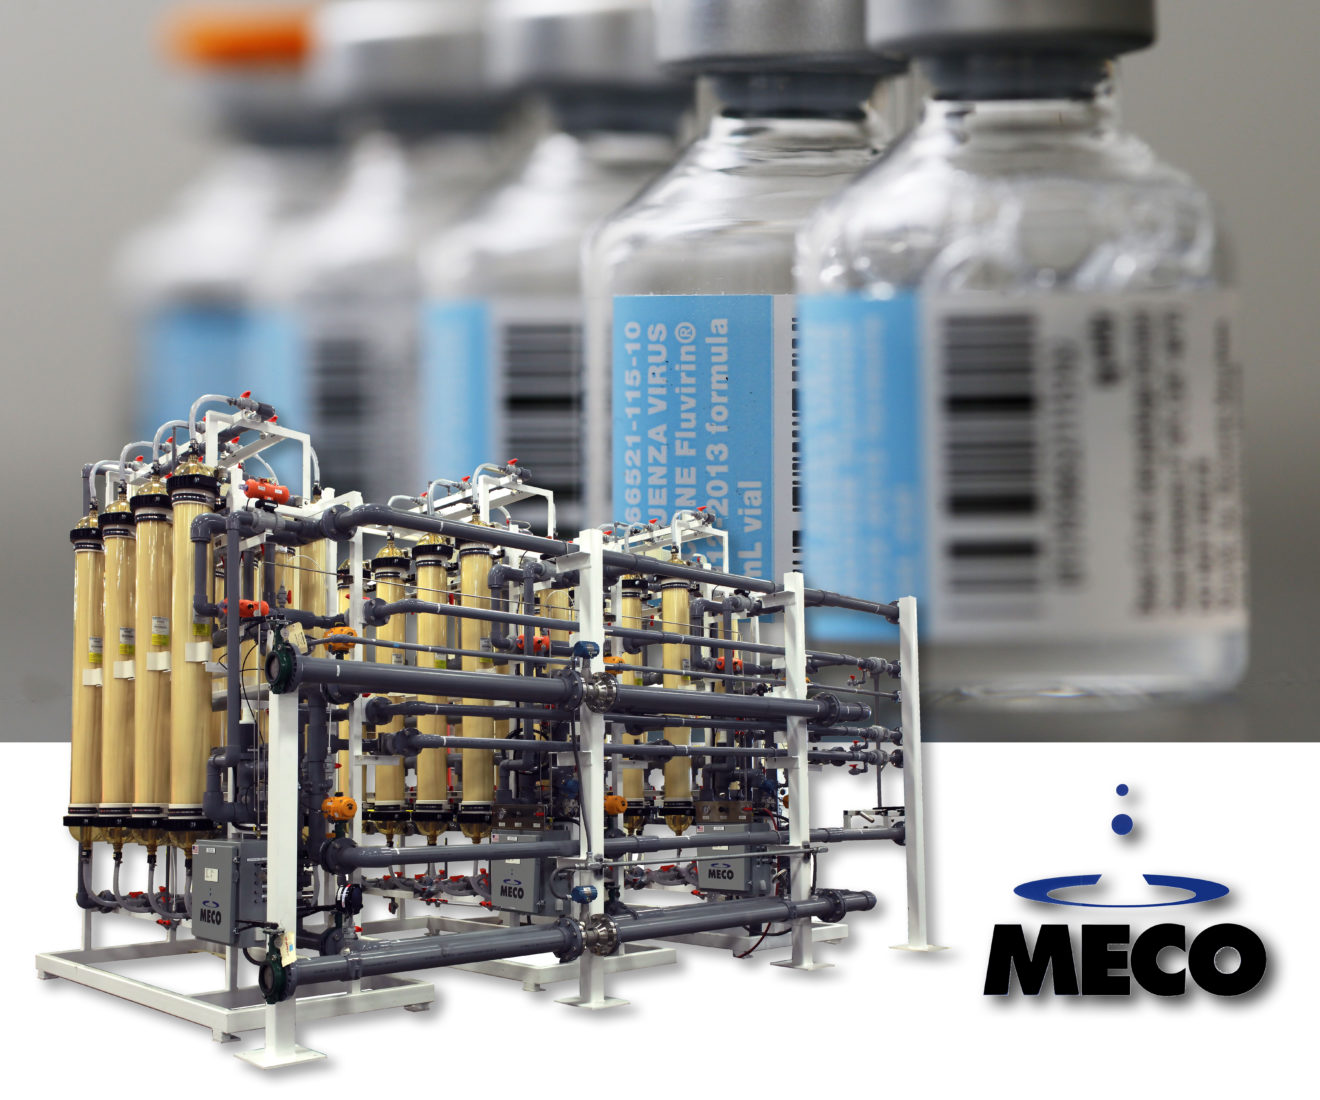 Pharmaceutical Company Uses MECO Ultrafiltration System to Help Produce Flu Vaccines